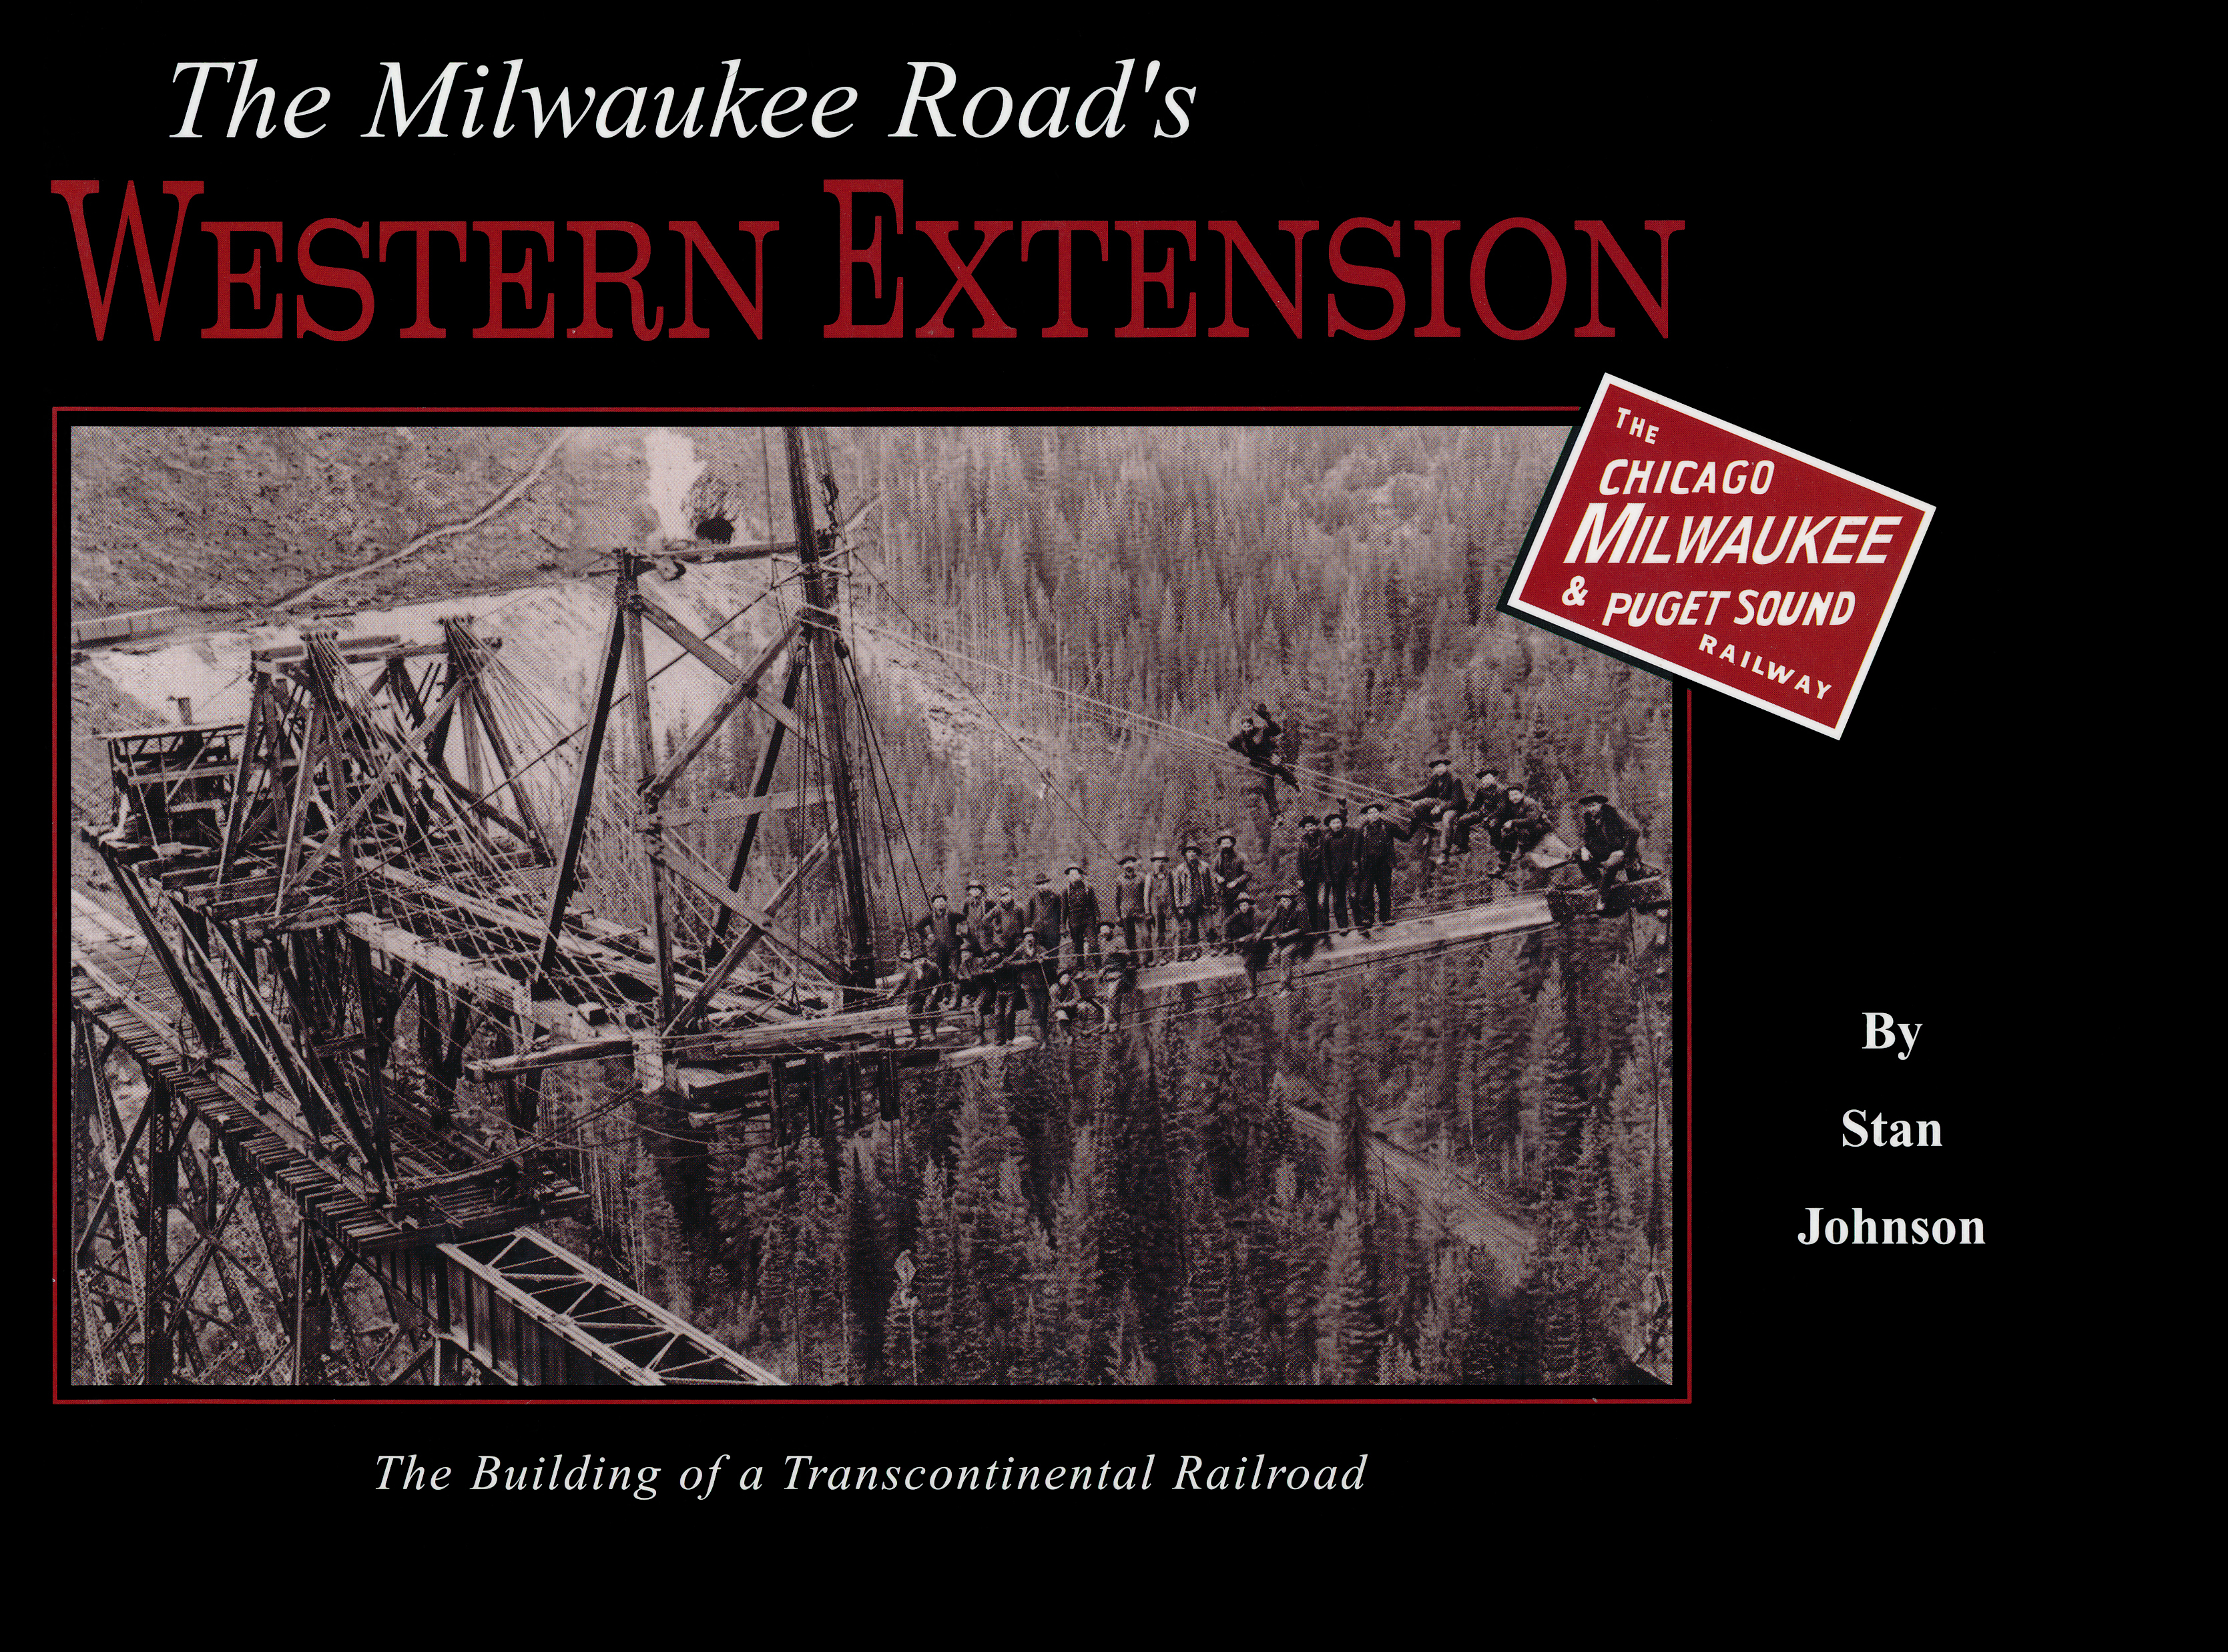 The Milwaukee Road's Western Extension